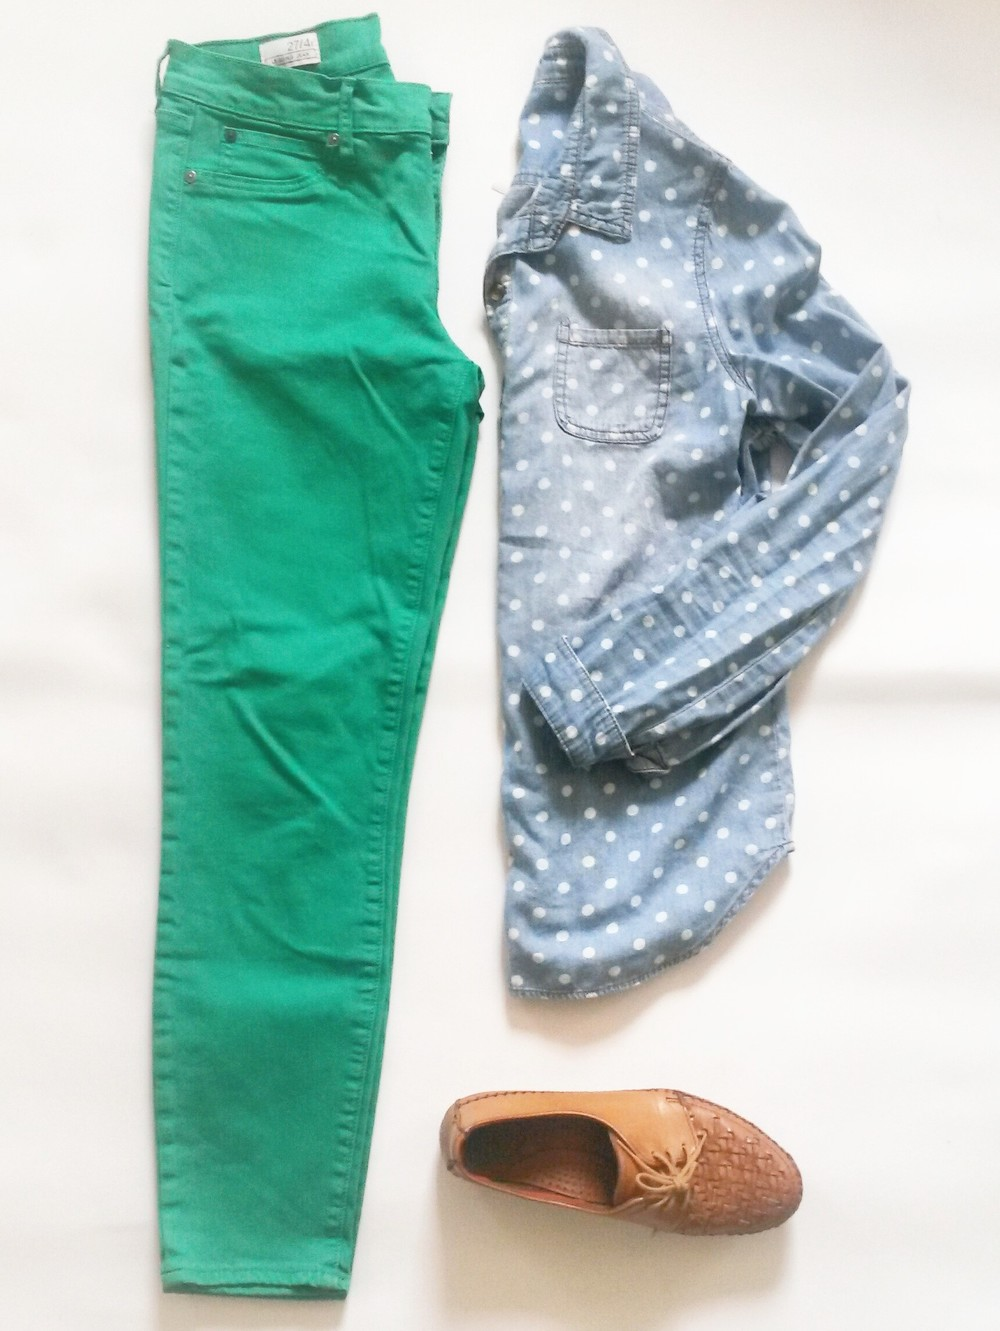 Gap mint legging jeans, Cherokee polka dot denim shirt, vintage woven leather shoes, all thrifted